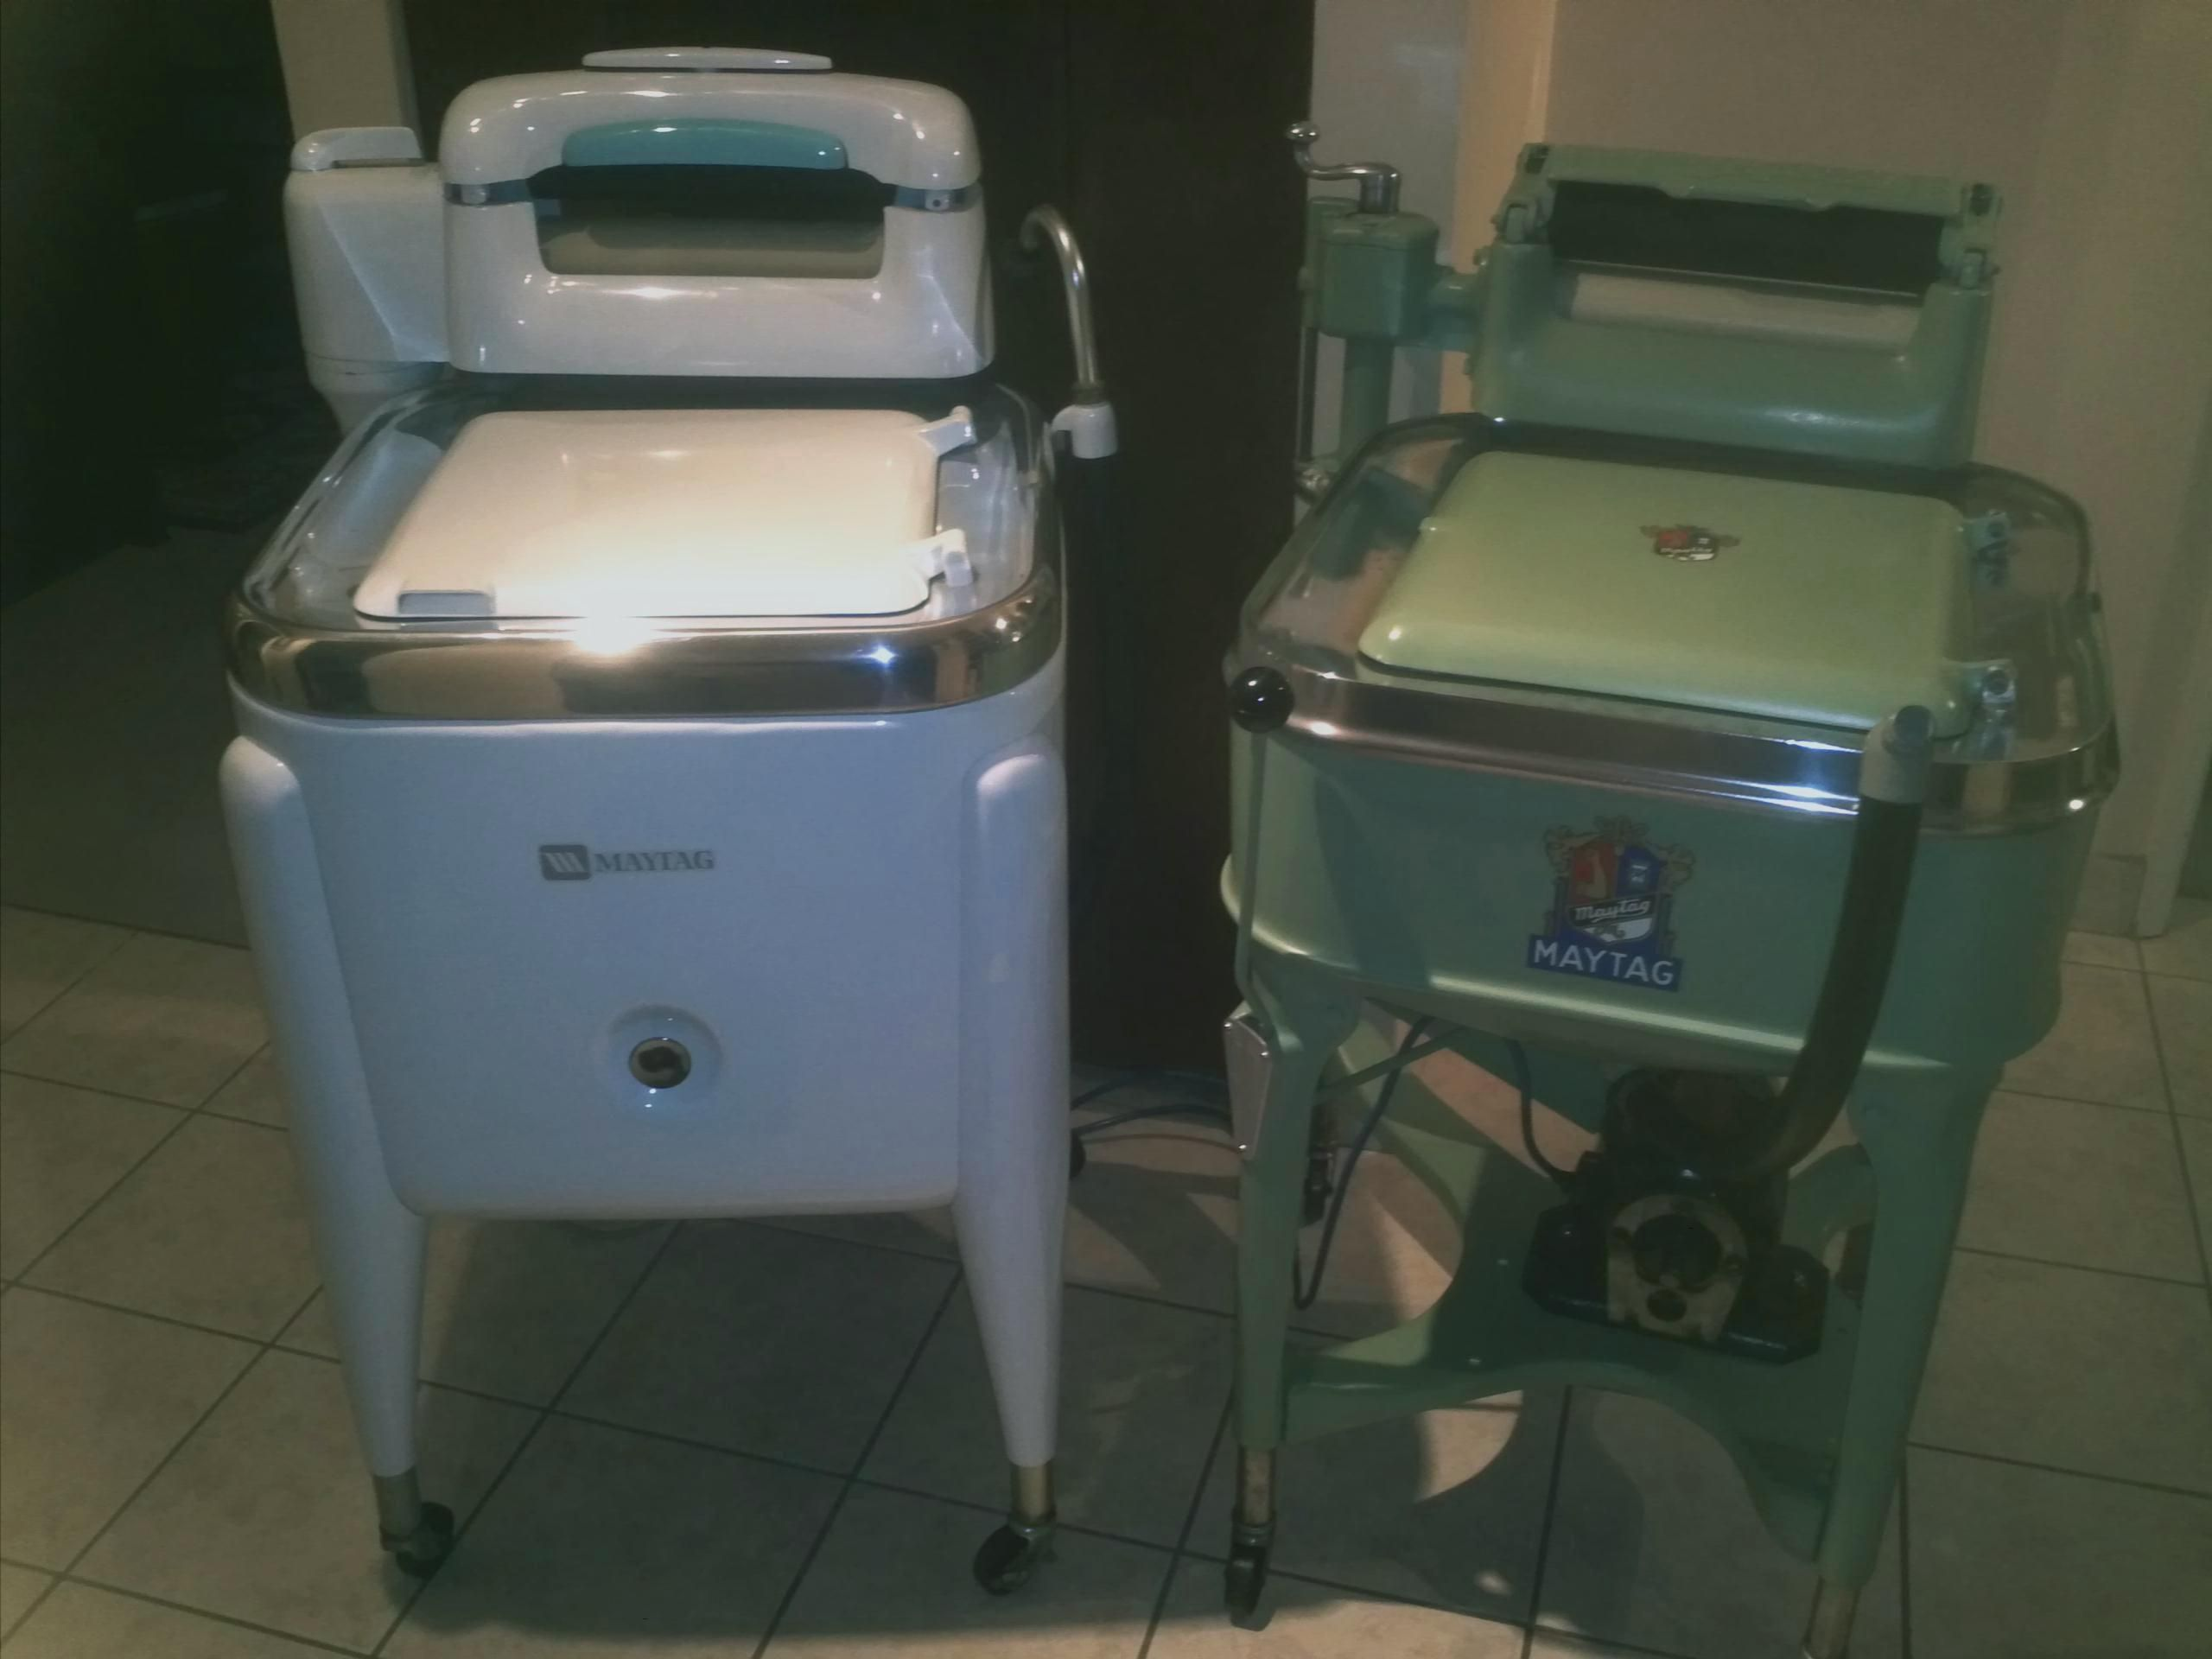 Maytags Side By Side The Old And The Really Old Left Is My 1977 Model E2lp And Right Is My Fully Restored 1935 Model Vintage Laundry Wringer Washer Wringer